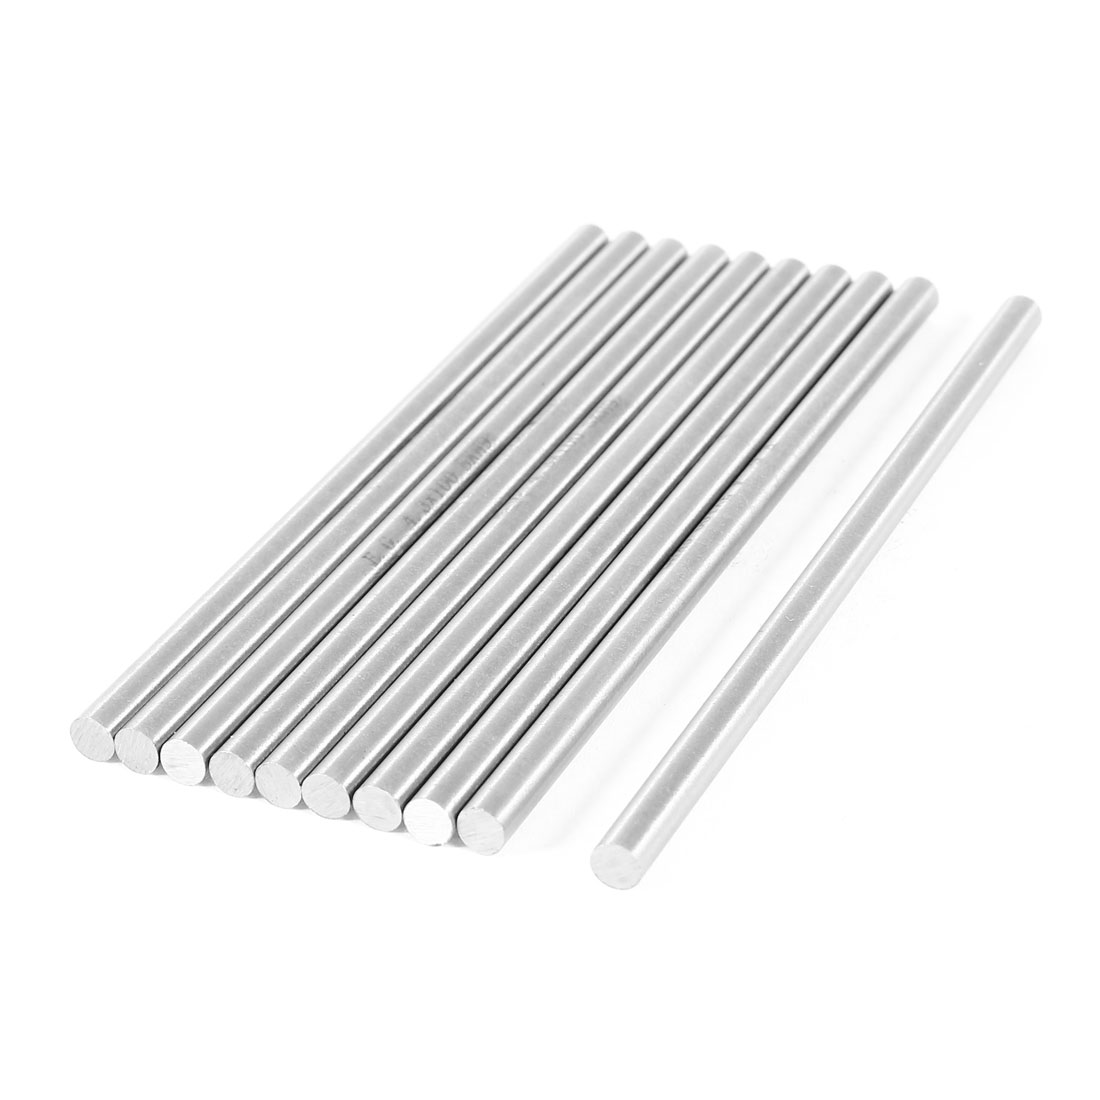 Unique Bargains CNC Lathe Part High Speed Steel Turning Bars 4.3mm x 100mm 10 Pcs by